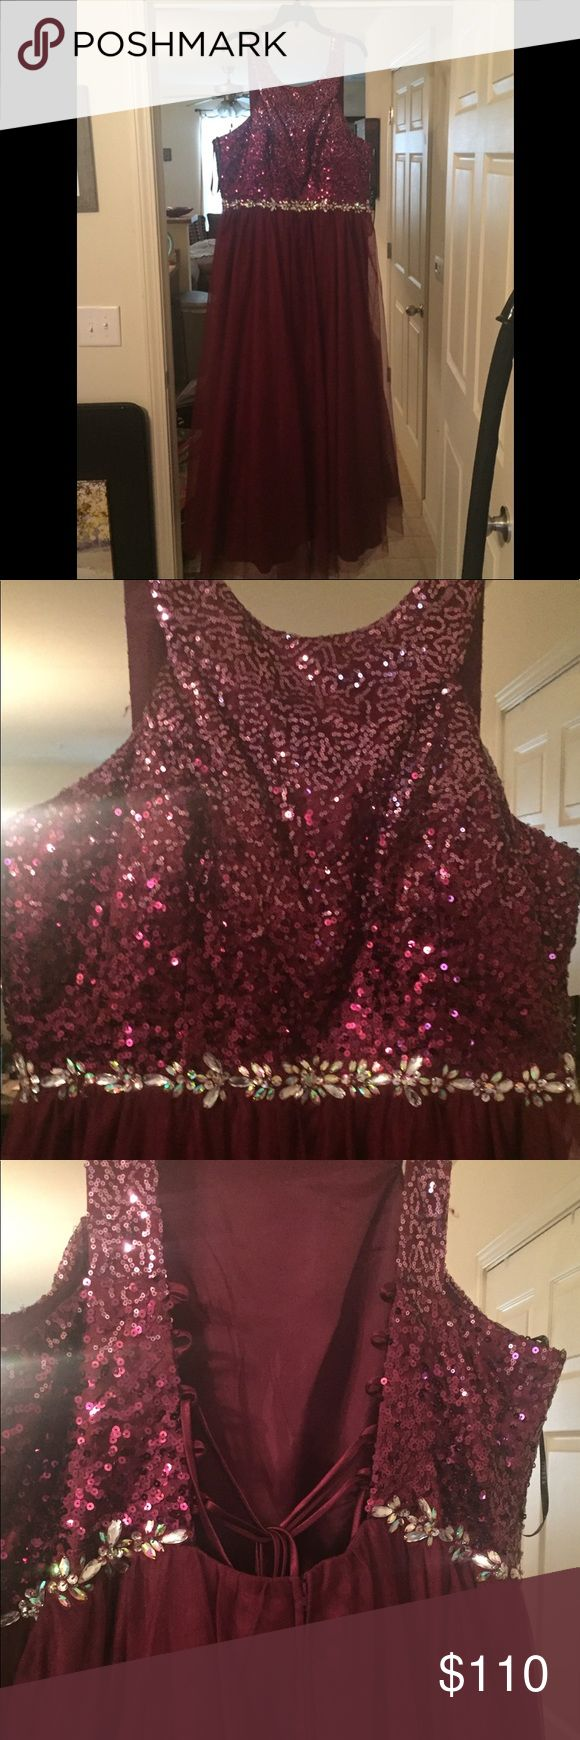 Masquerade brand prom dress! Size 20 Gorgeous Masquerade brand prom dress! Size 20. Only worn for a few hours for a masquerade/dinner party.  Perfect for any special occasion! Masquerade Dresses Prom